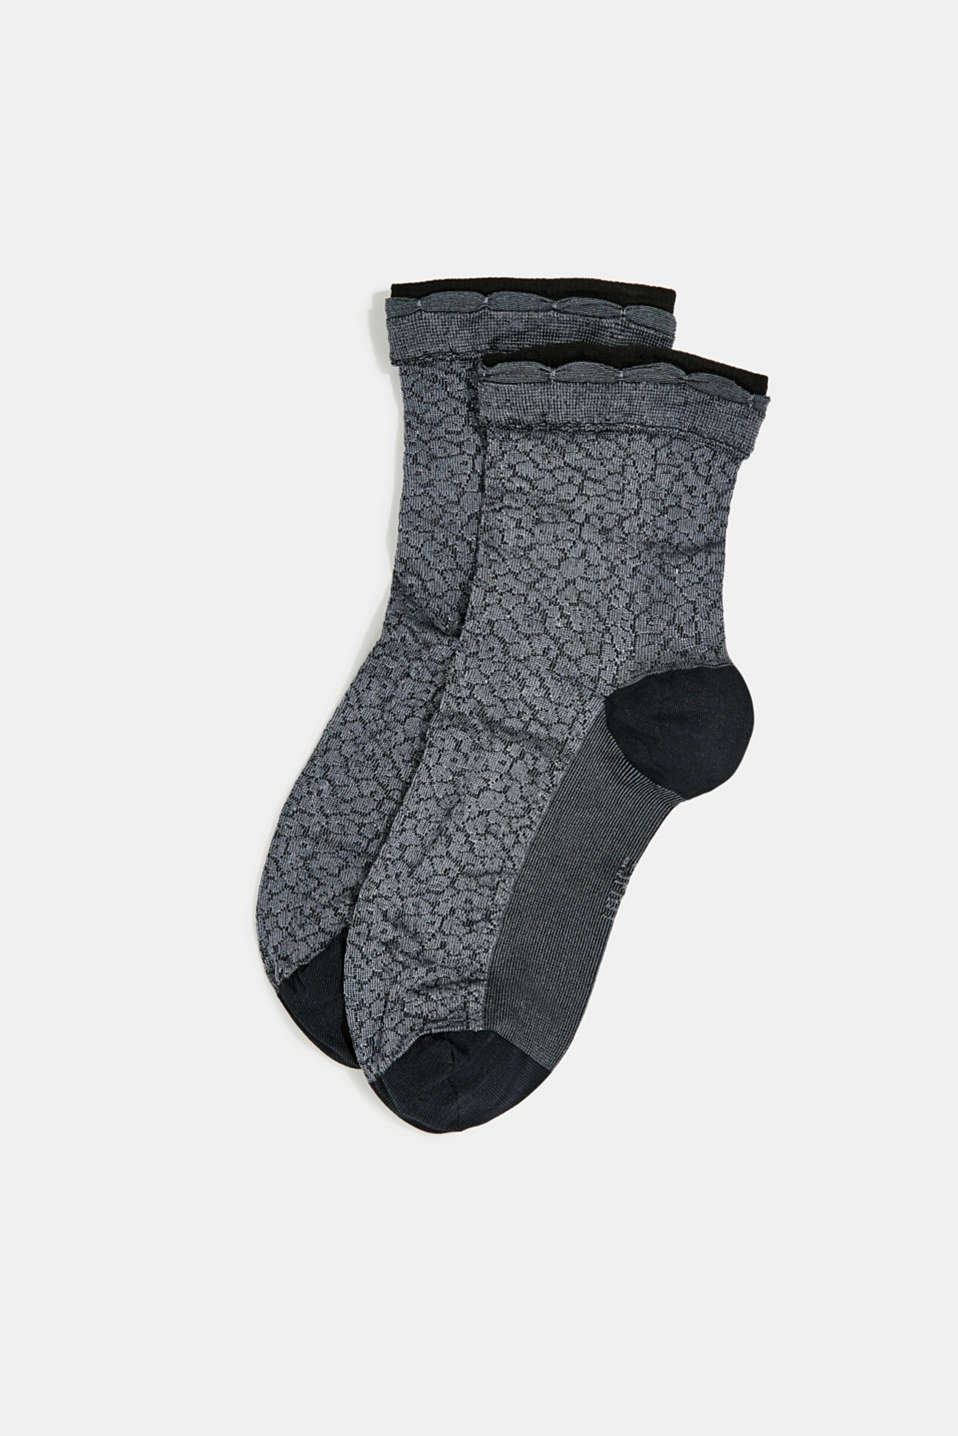 Esprit - With wool and cashmere: knitted socks